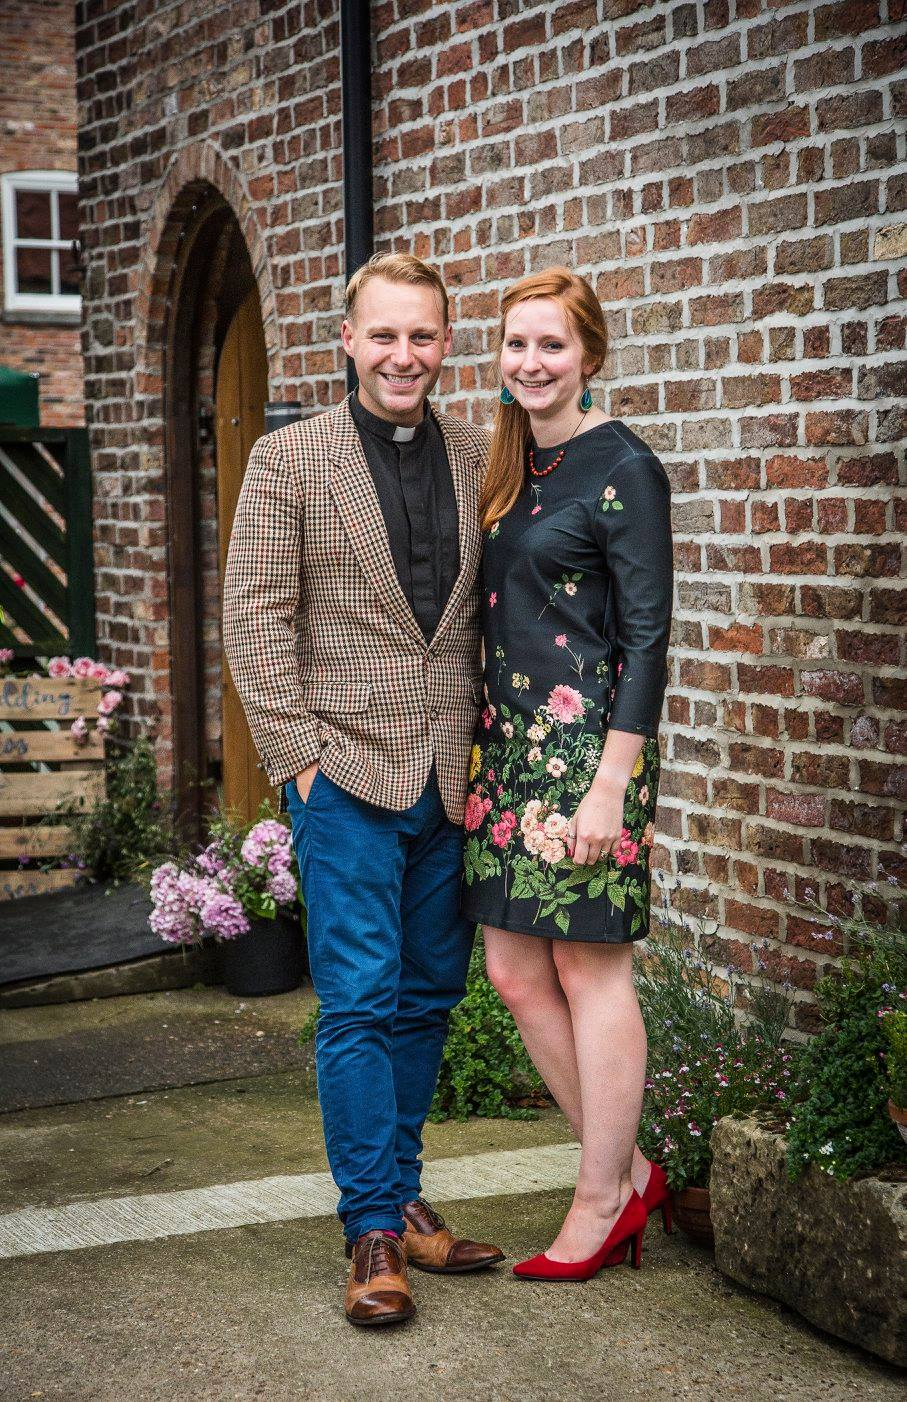 Leadership - Our Minister Charlie Lamont came to St Andrews in July 2018. Charlie's appointment was made through the coming together of many churches in Southwark diocese, to revitalise the work at St Andrews'. The Good Stewards trust and the Diocese of Southwark along with the current members at St Andrews' have jointly funded a full Stipend, enabling Charlie, Hannah and their son, to come and minister in the Gospel here.To view Charlie's Blog click here